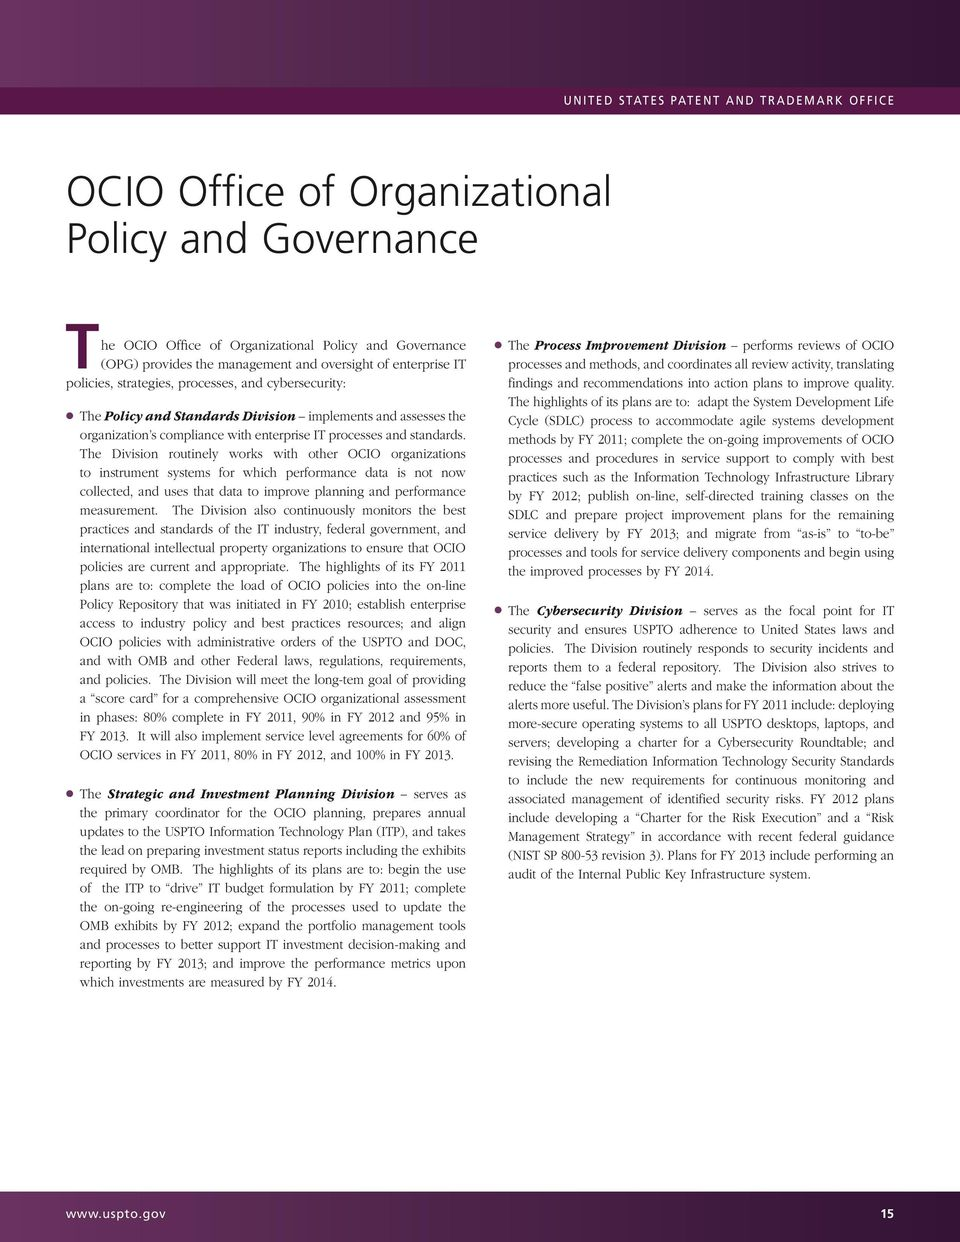 The Division routinely works with other OCIO organizations to instrument systems for which performance data is not now collected, and uses that data to improve planning and performance measurement.